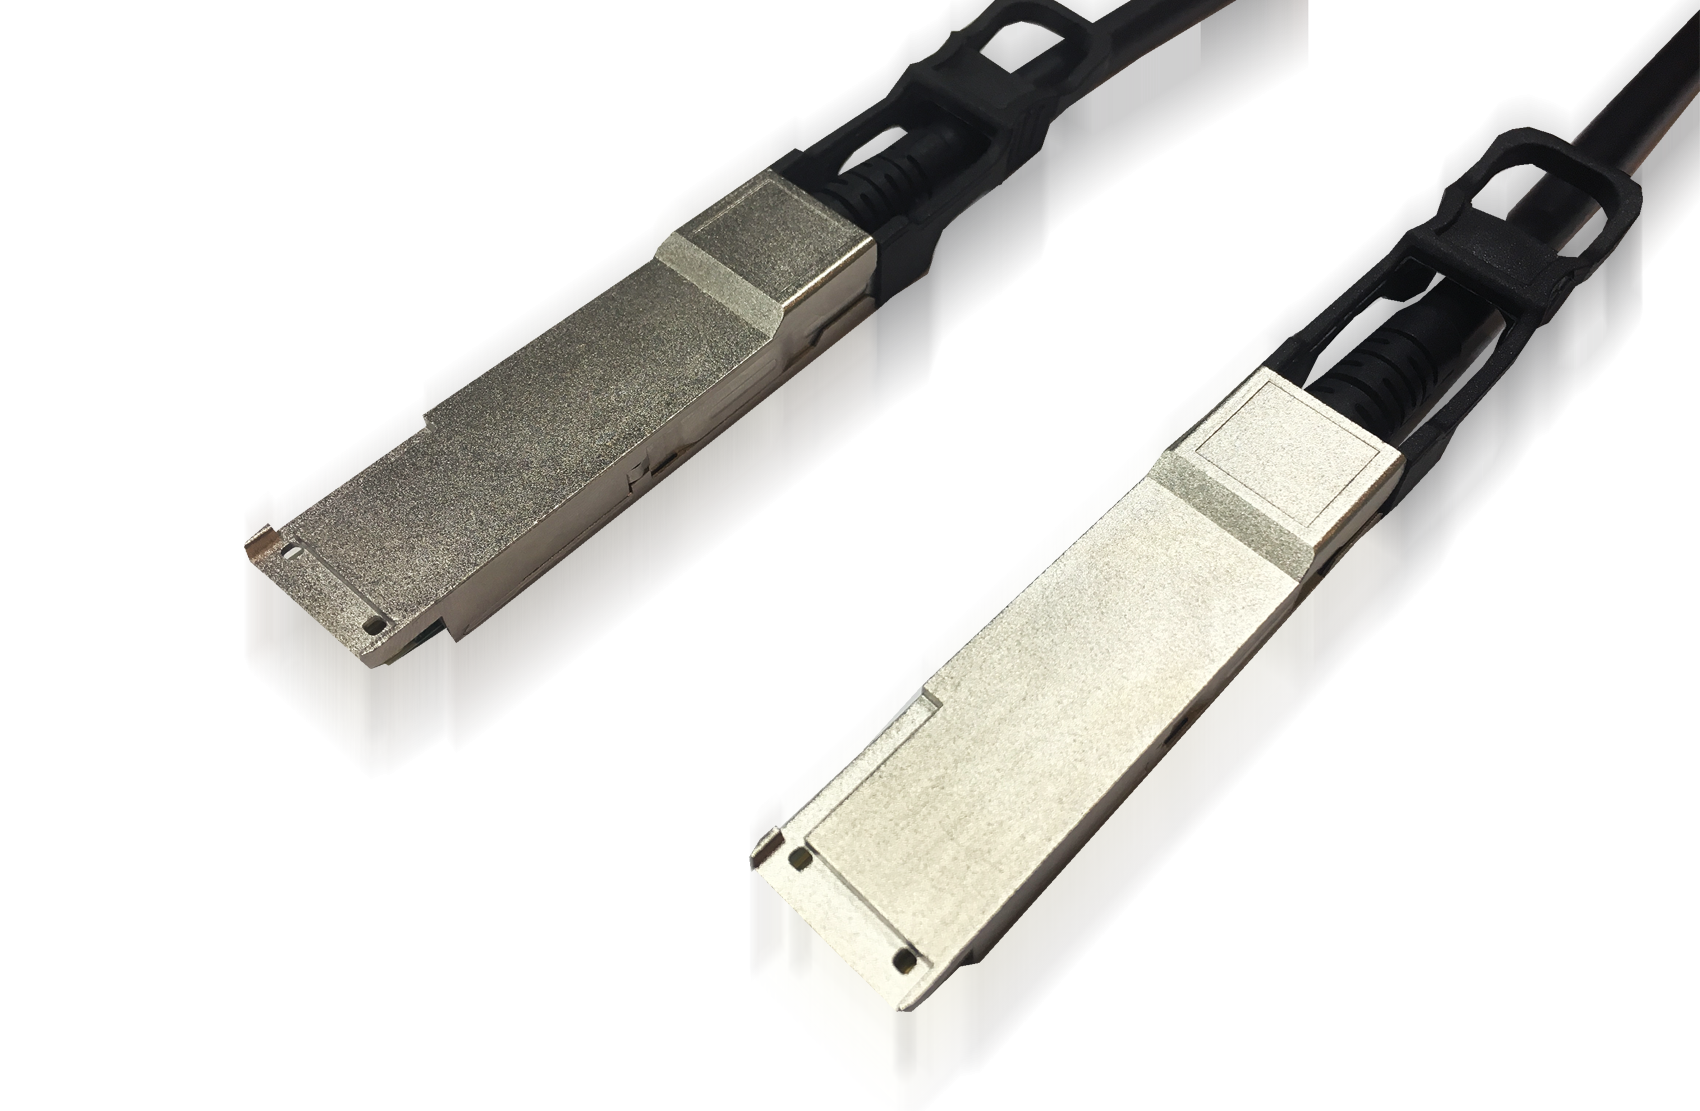 311002 QSFP28 Cable